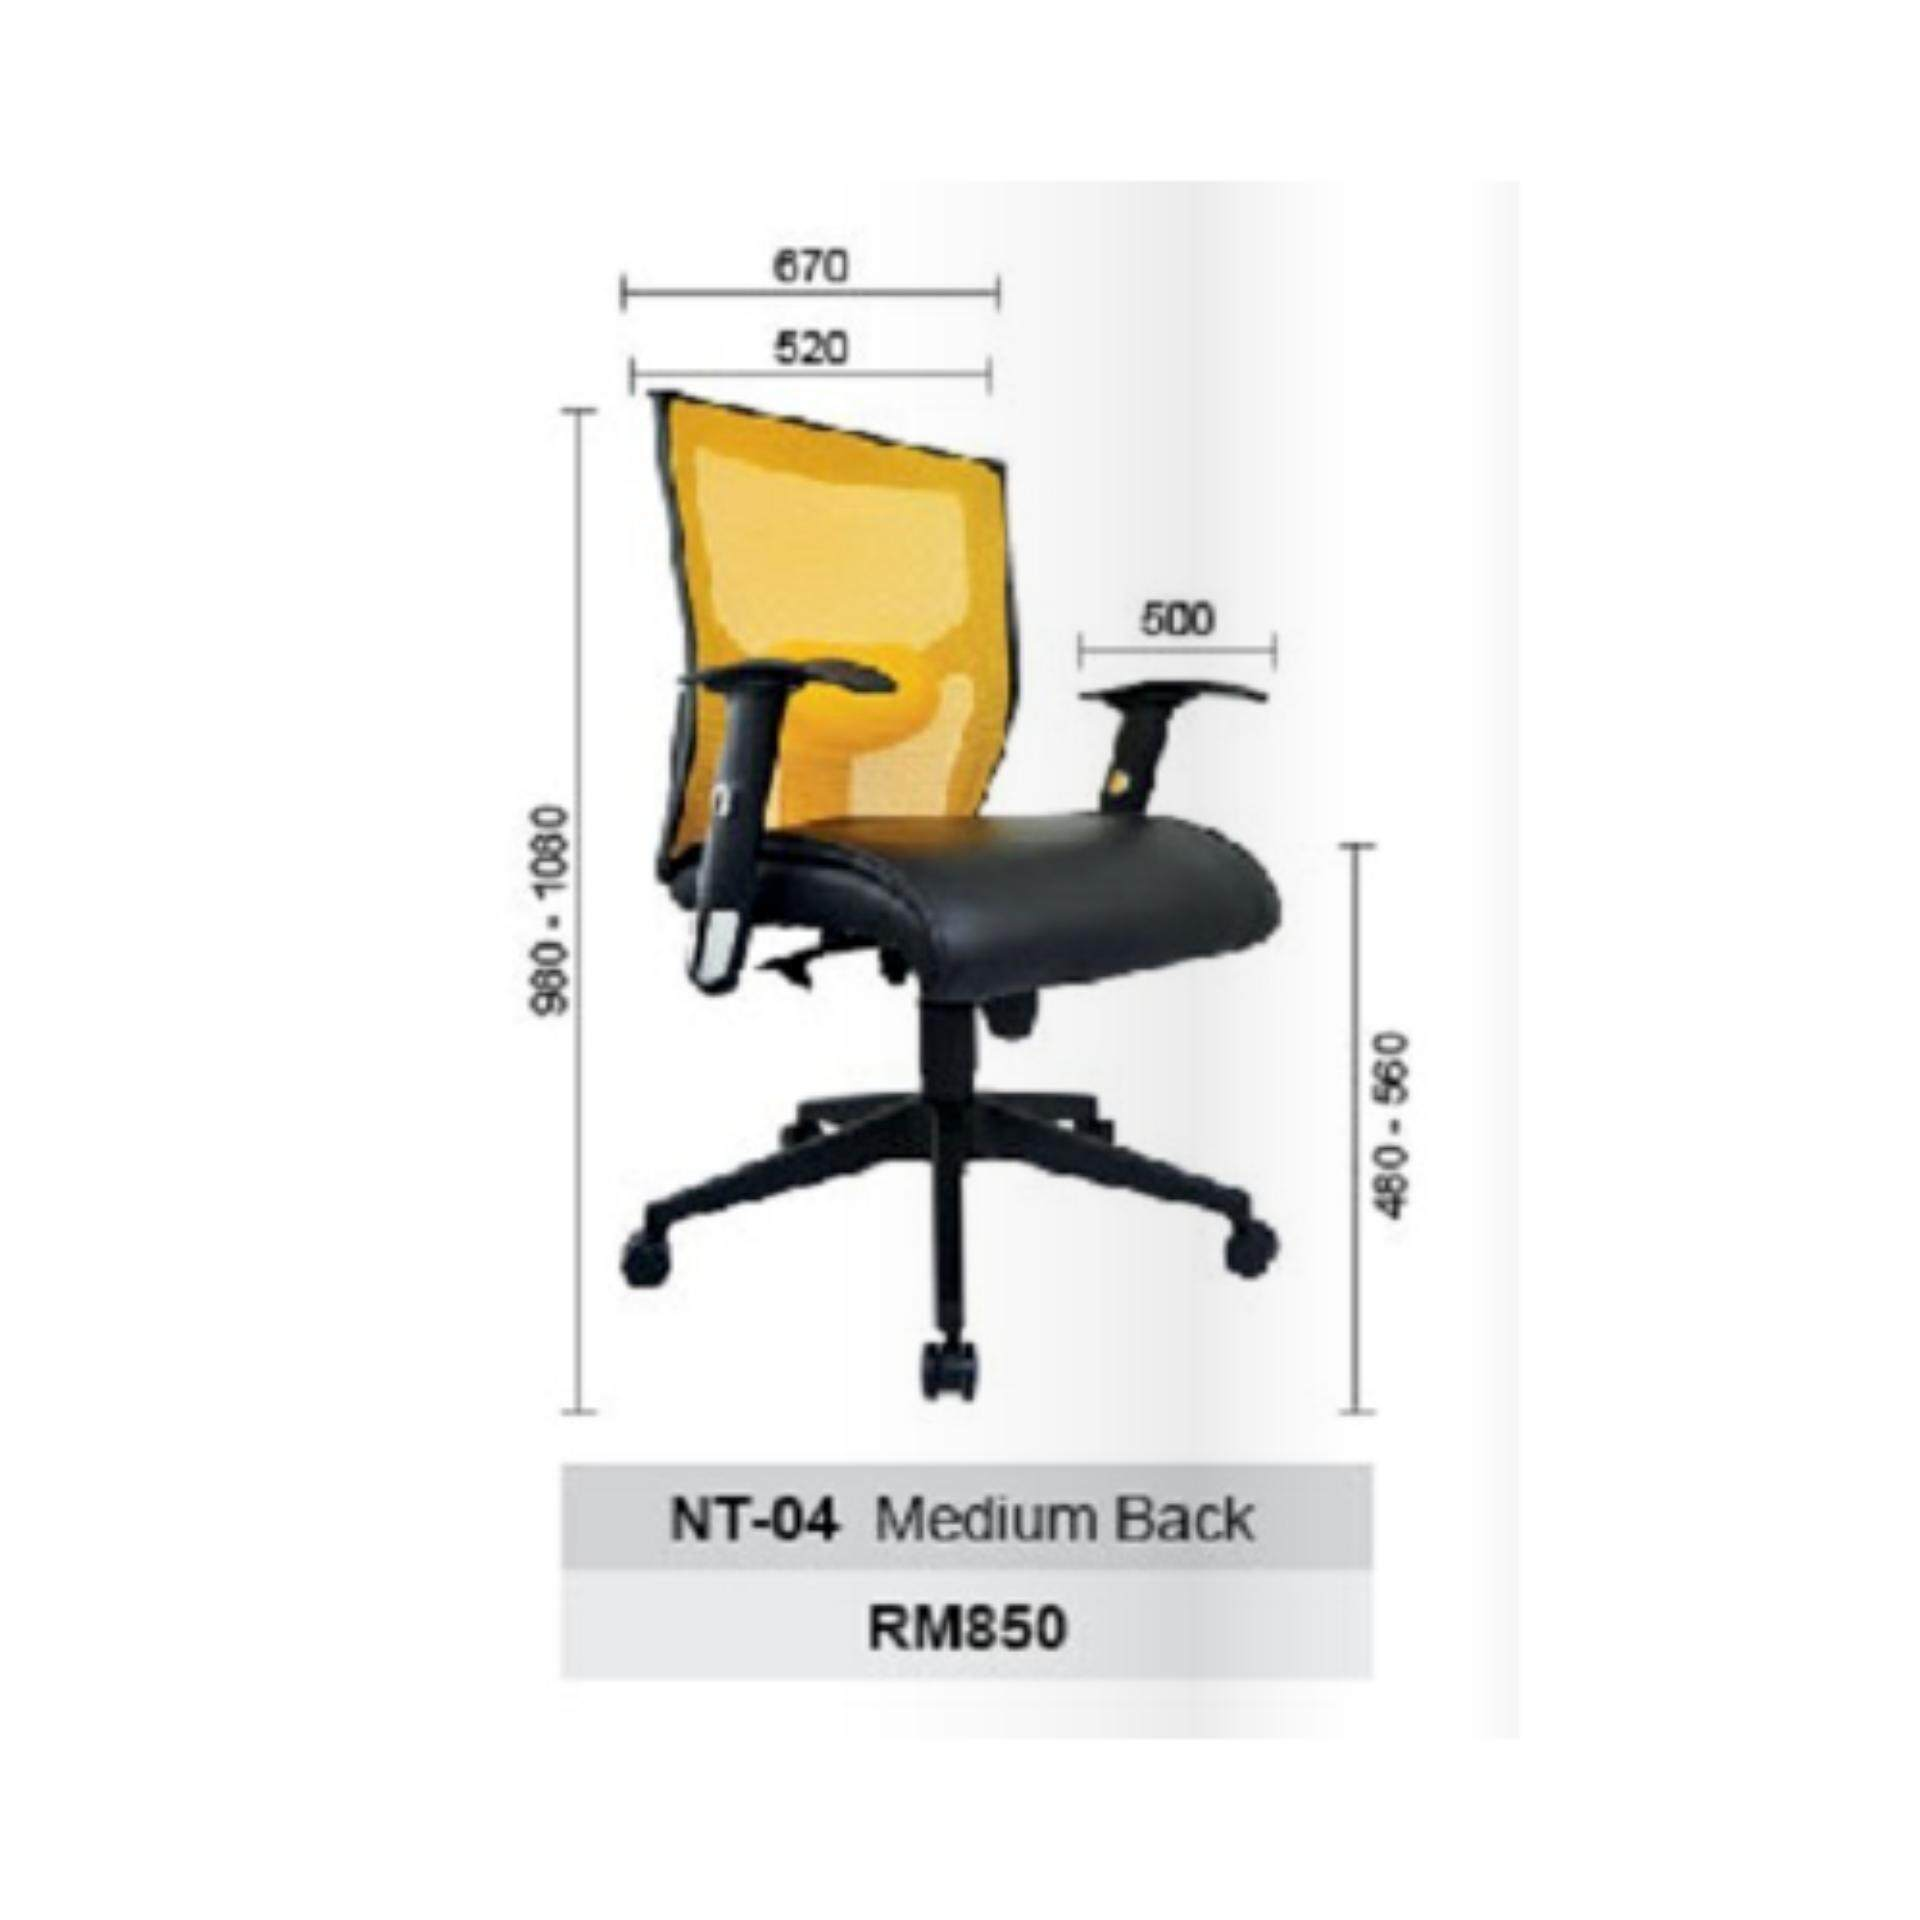 Deco San Marino Office Chairs Leather Executive Medium Back Recliner Computer Desk Swivel Chair ( Yellow Color ) Pre-Order 2 Weeks